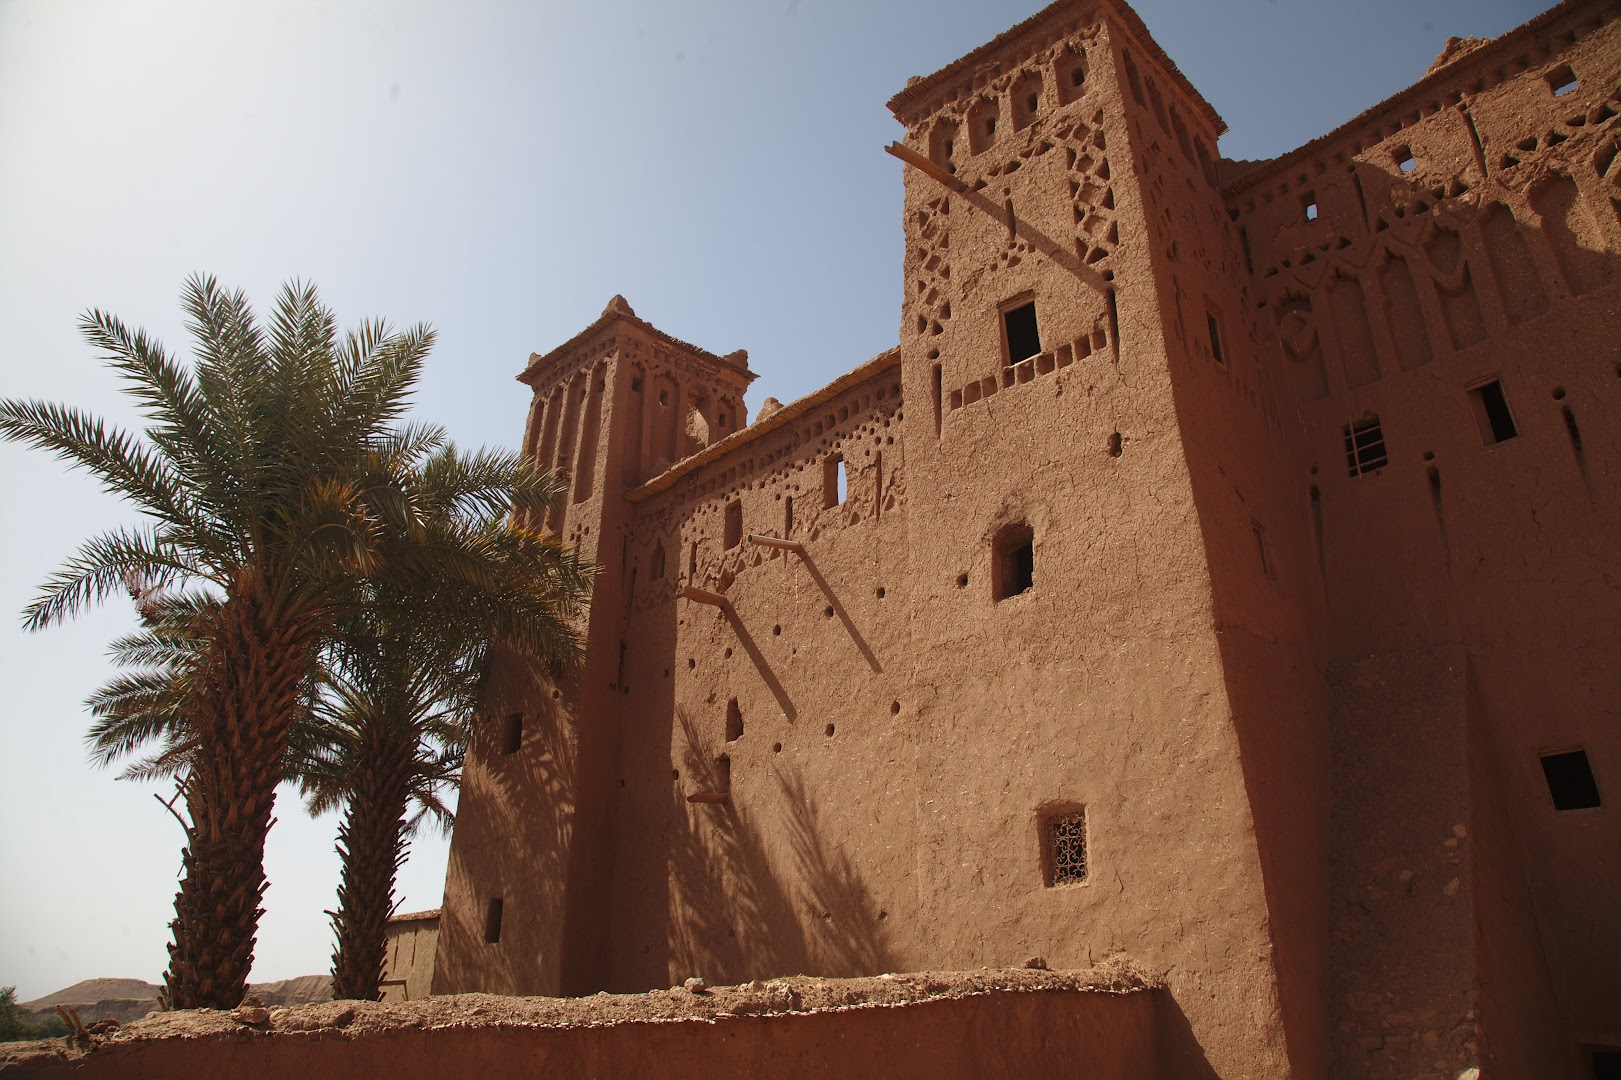 The mighty kasbah